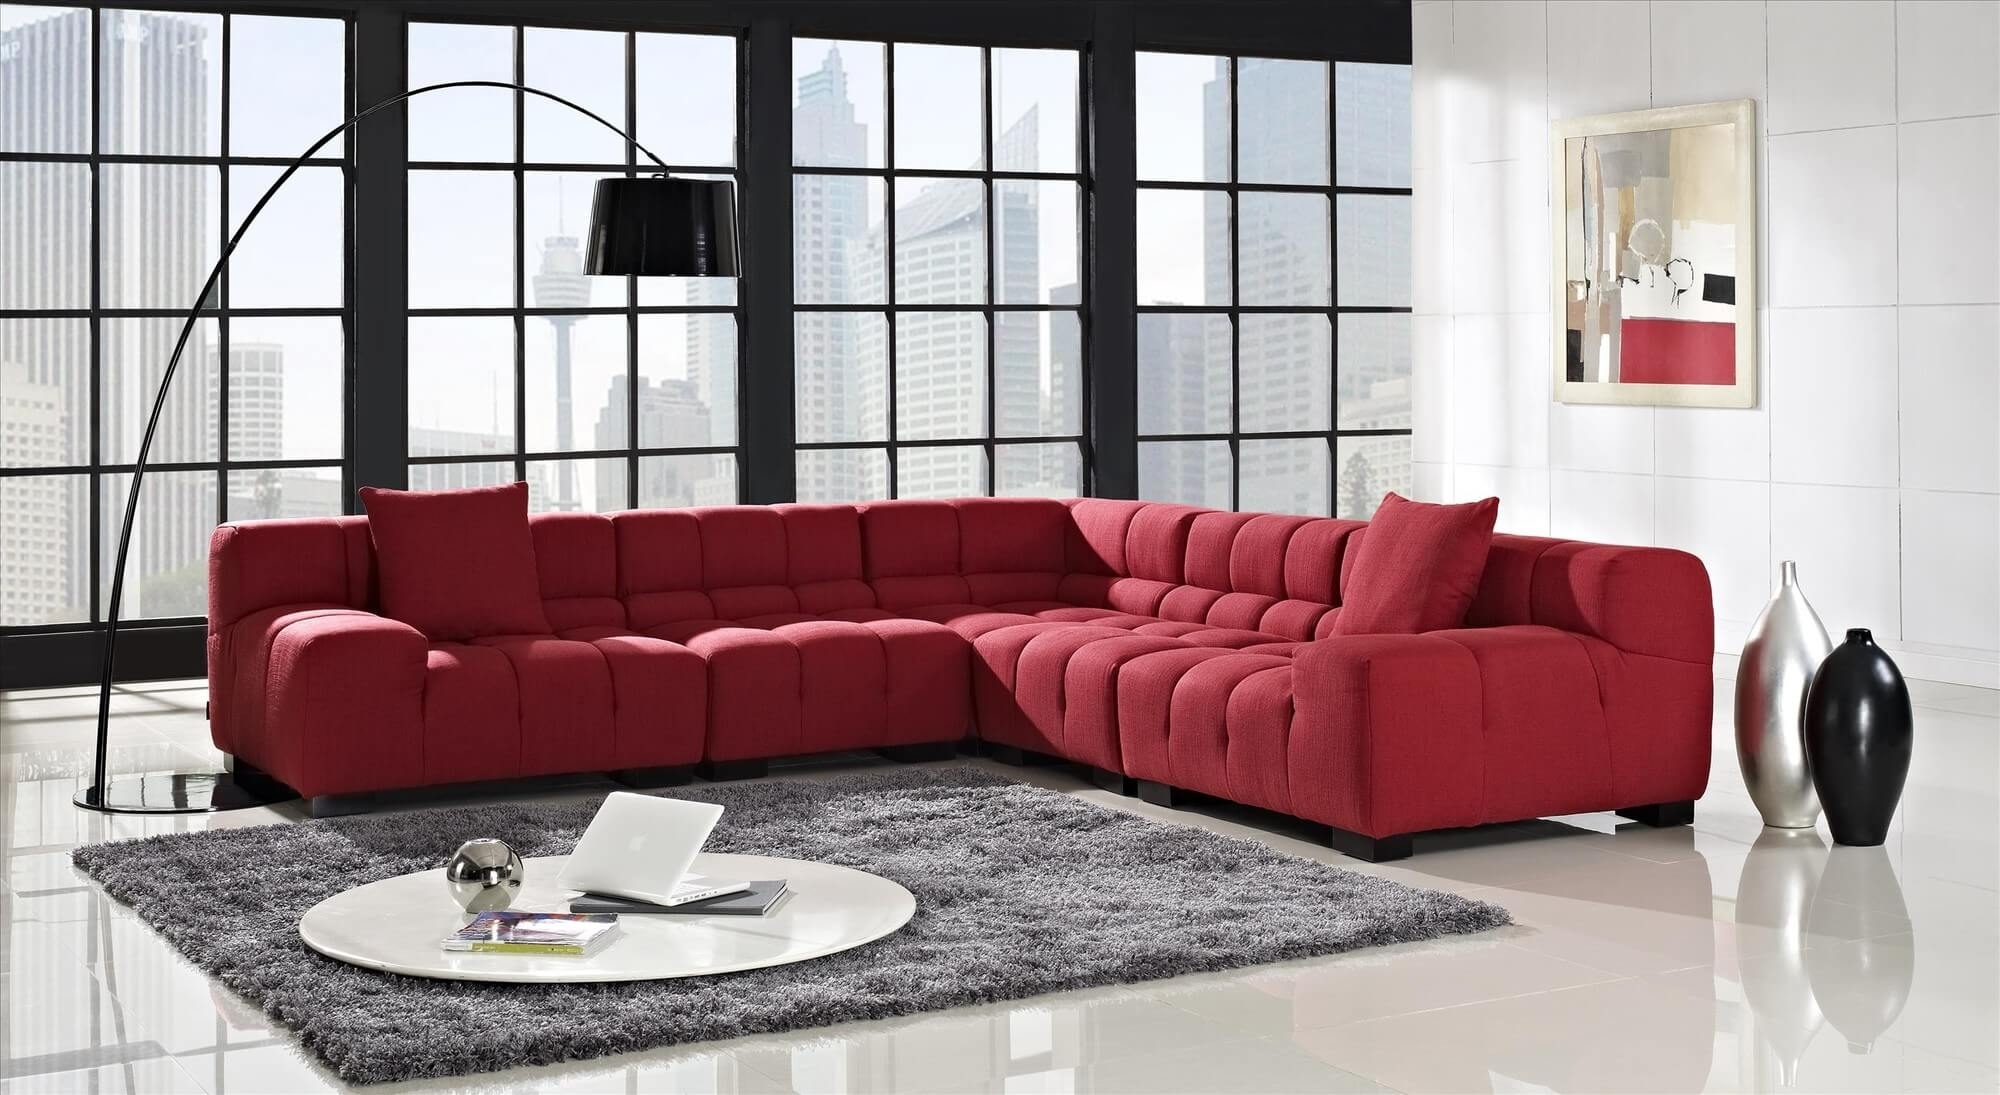 18 Stylish Modern Red Sectional Sofas With Regard To Small Red Leather Sectional Sofas (Image 1 of 10)